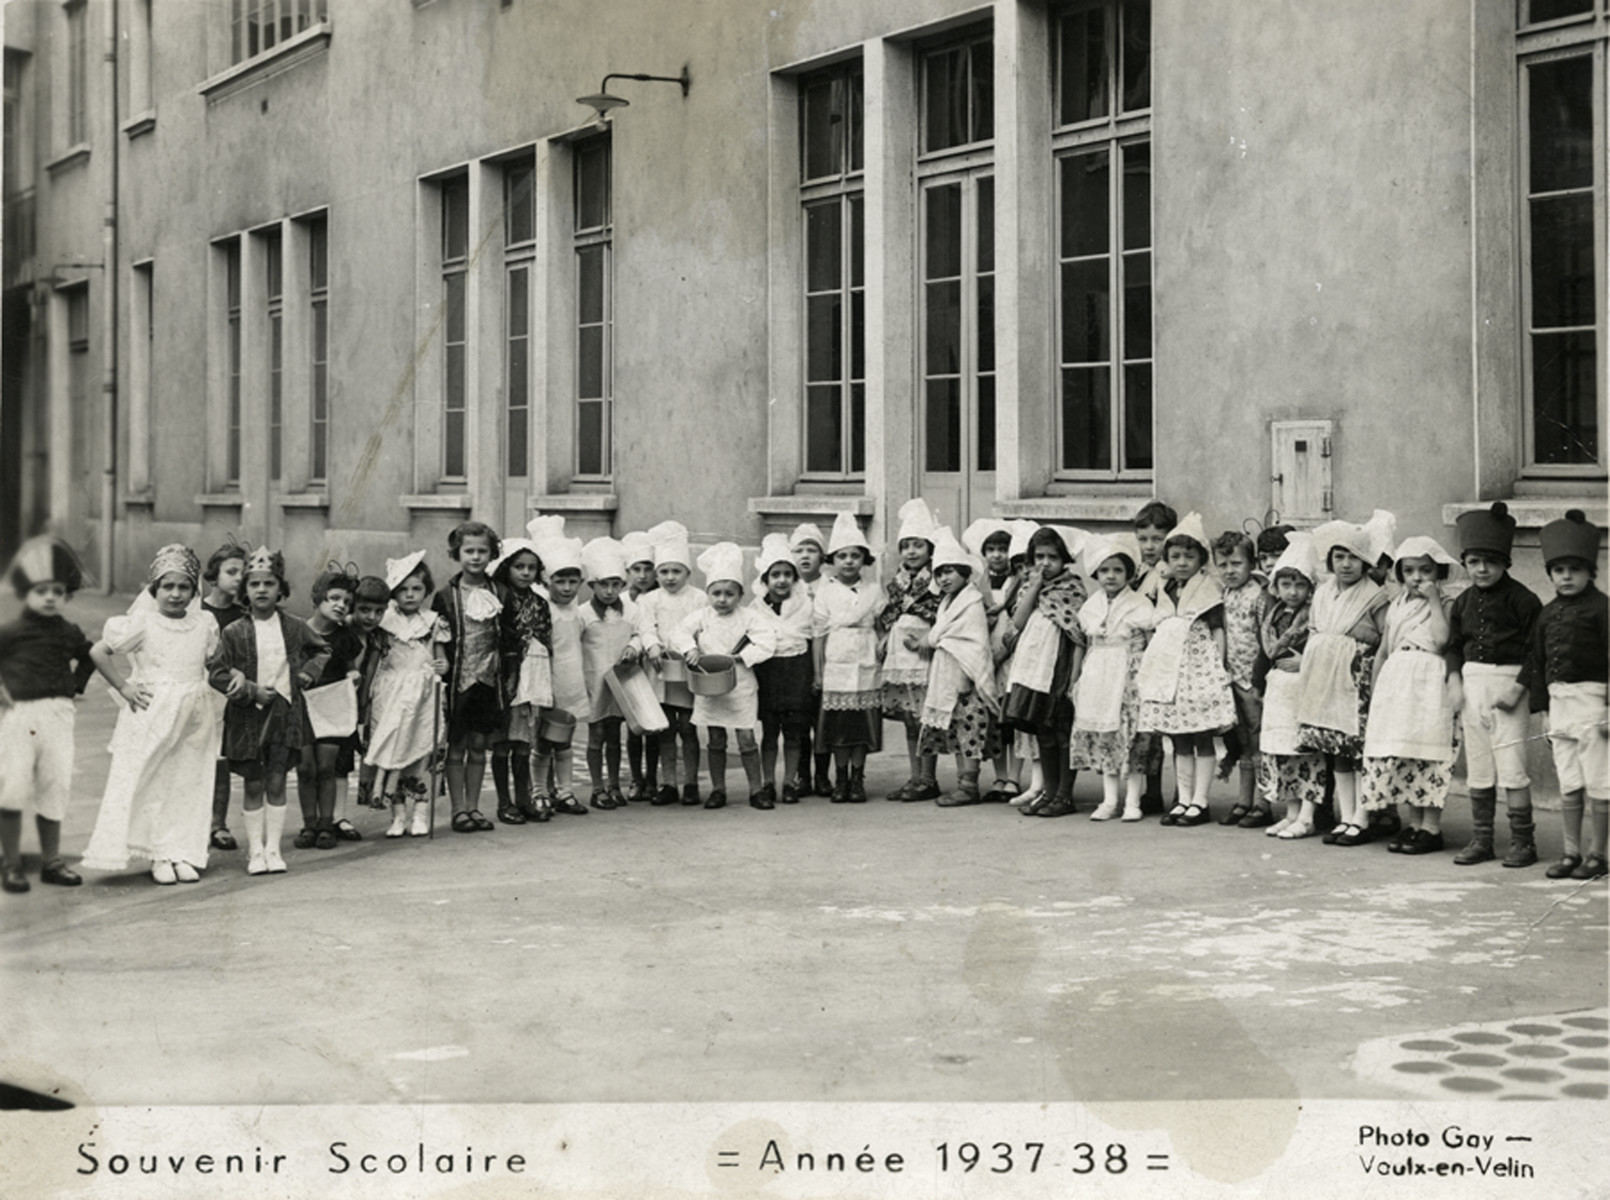 Children in an elementary school in Lyon pose in costume to celebrated Mardi Gras.